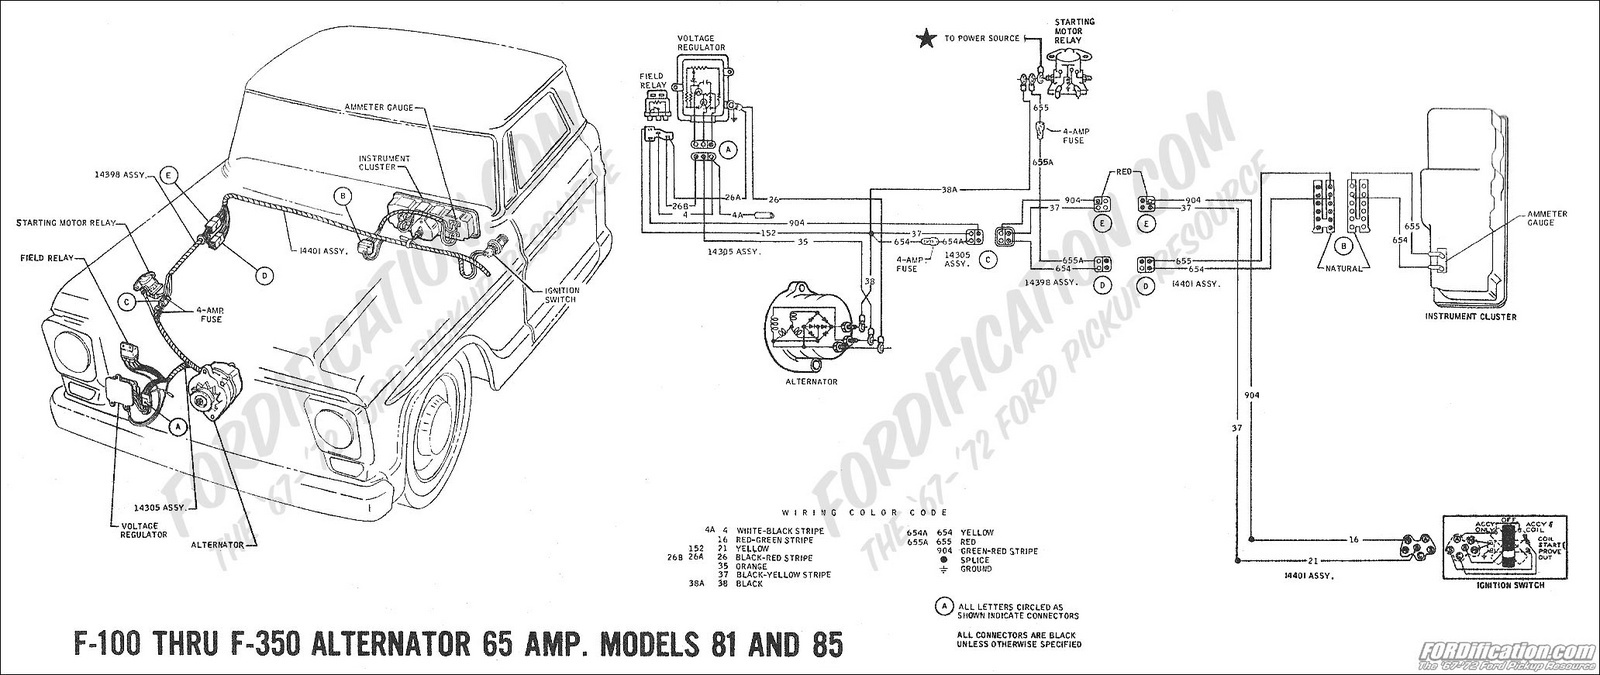 81 ford f100 wiring diagram wiring diagram data oreo Motorcraft Transmission Fluid Chart wiring diagram for a 73 78 ford f100 wiring diagram detailed typical ignition switch wiring diagram 81 ford f100 wiring diagram